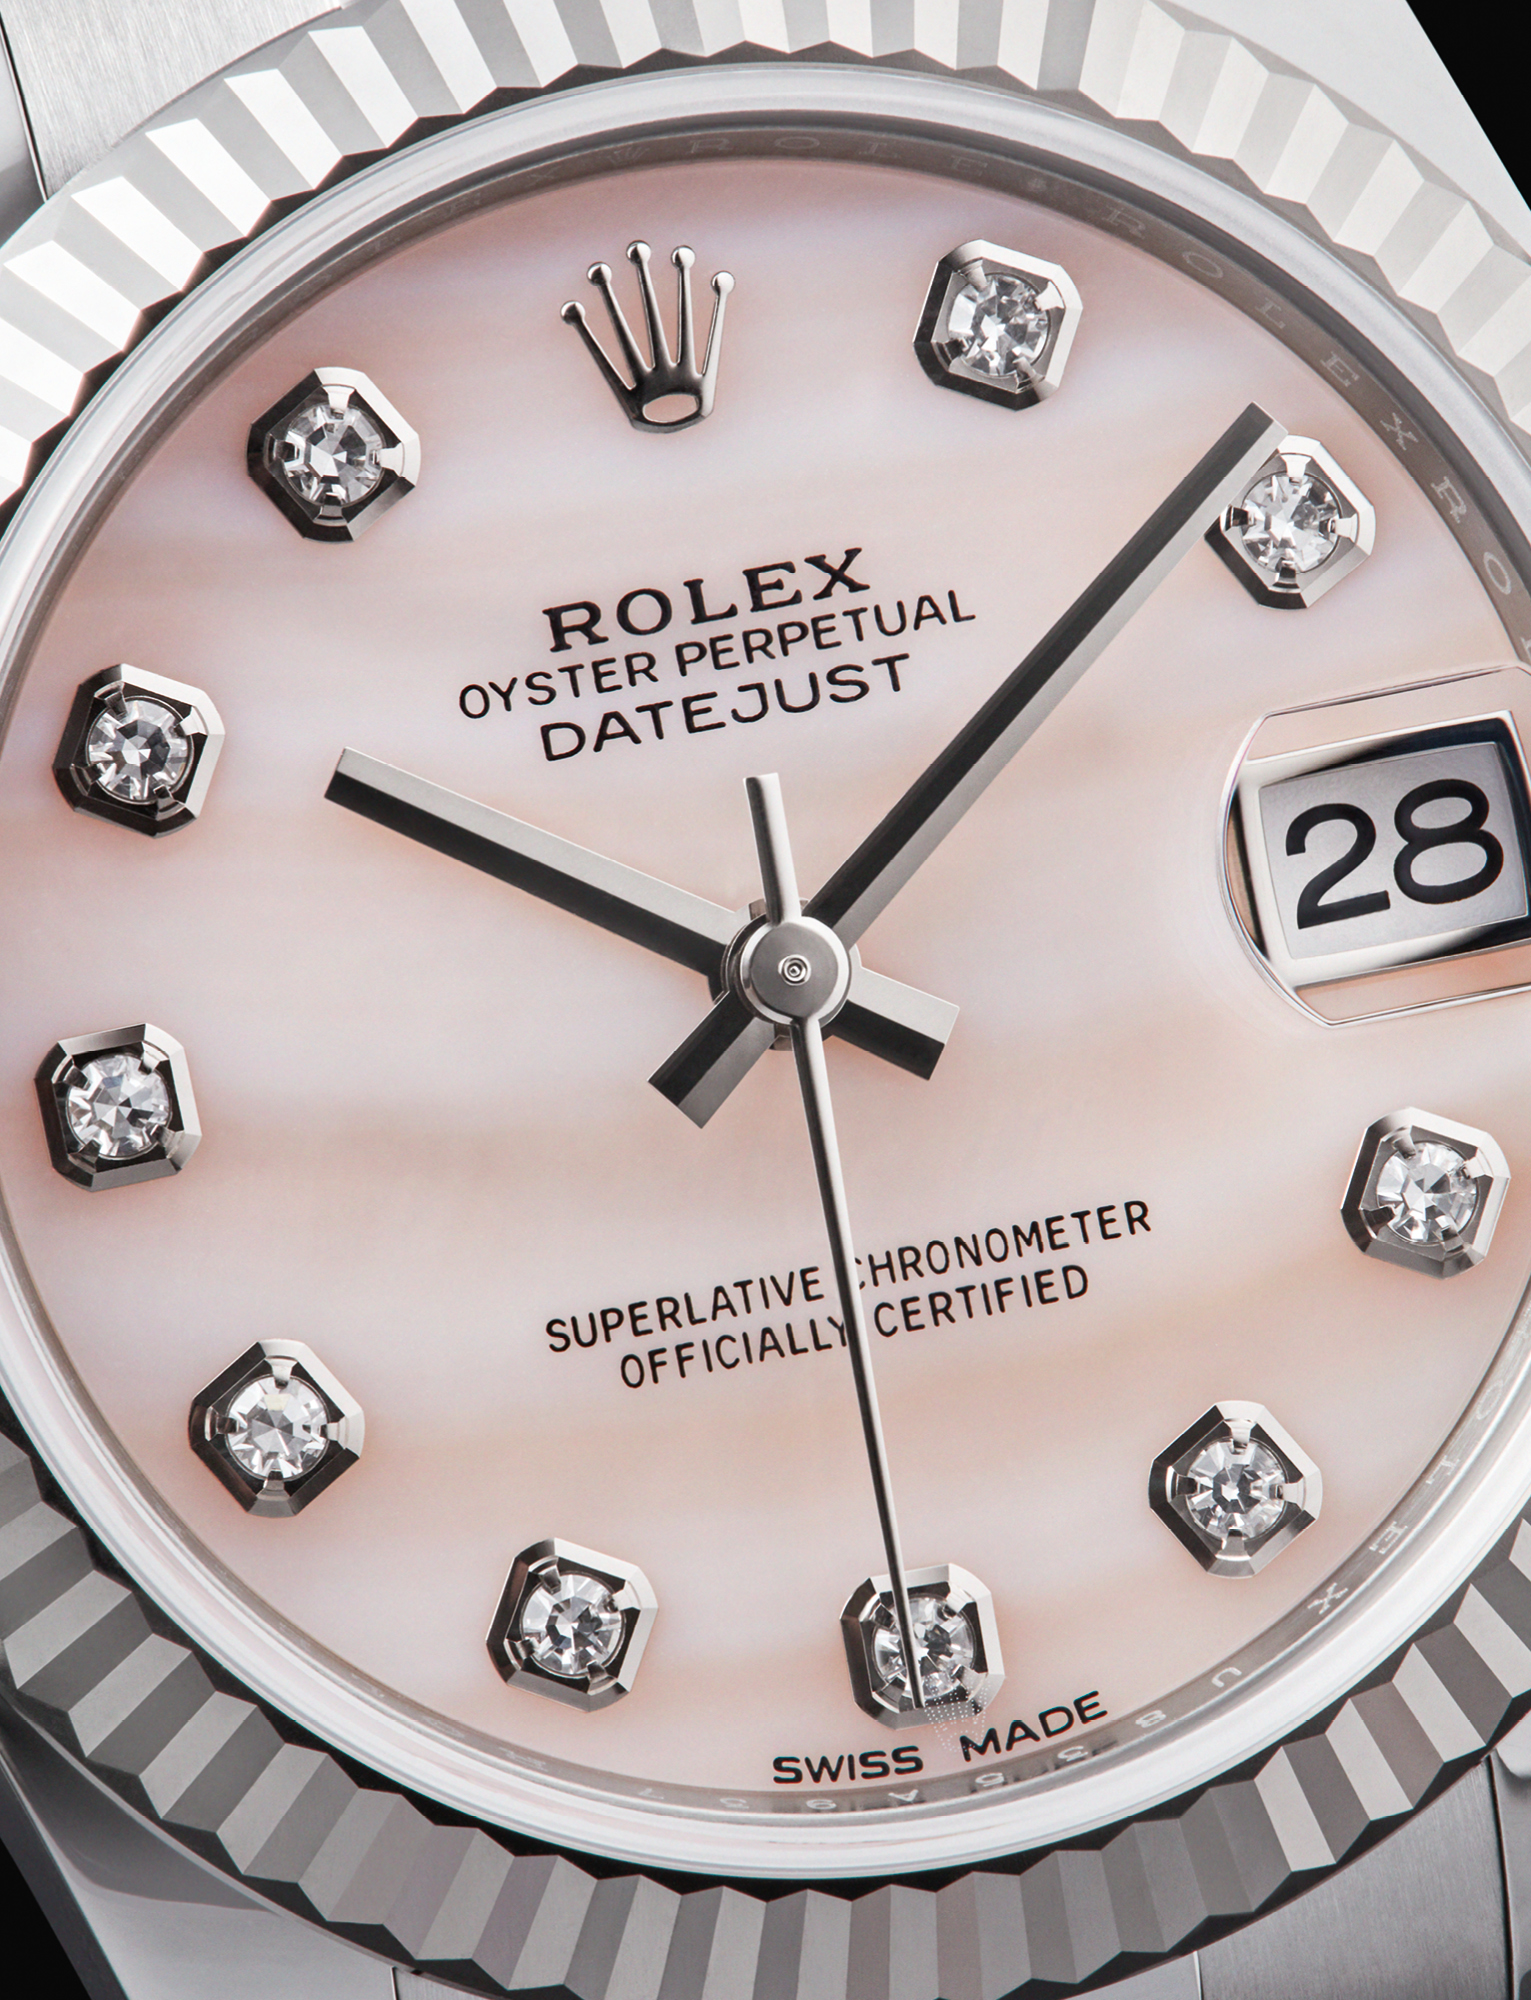 The iconic Rolex Datejust 31 is characterised by its oyster steel and white gold case and bracelet, and its pink mother-of- pearl dial featuring diamonds markers. It is powered by a calibre 2235 self-winding mechanical movement. £9,150,ROLEX